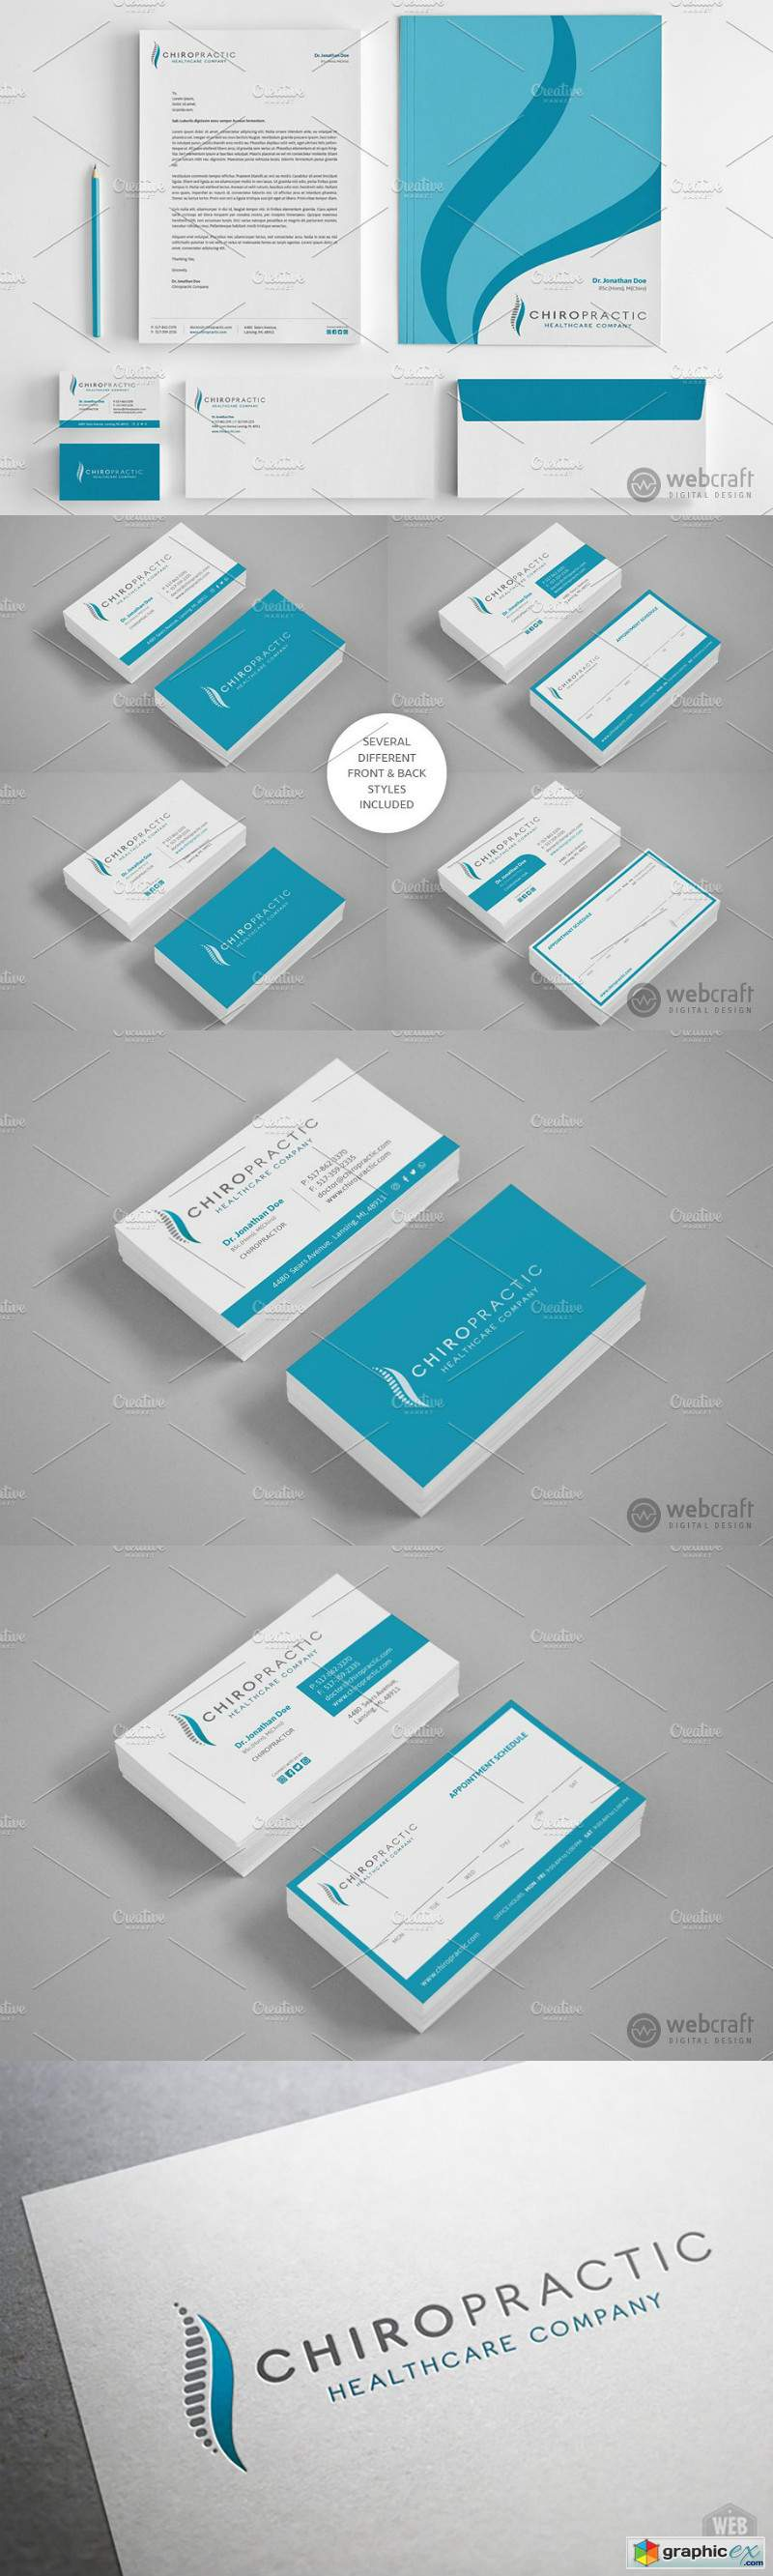 Chiropractic Logo Stationery